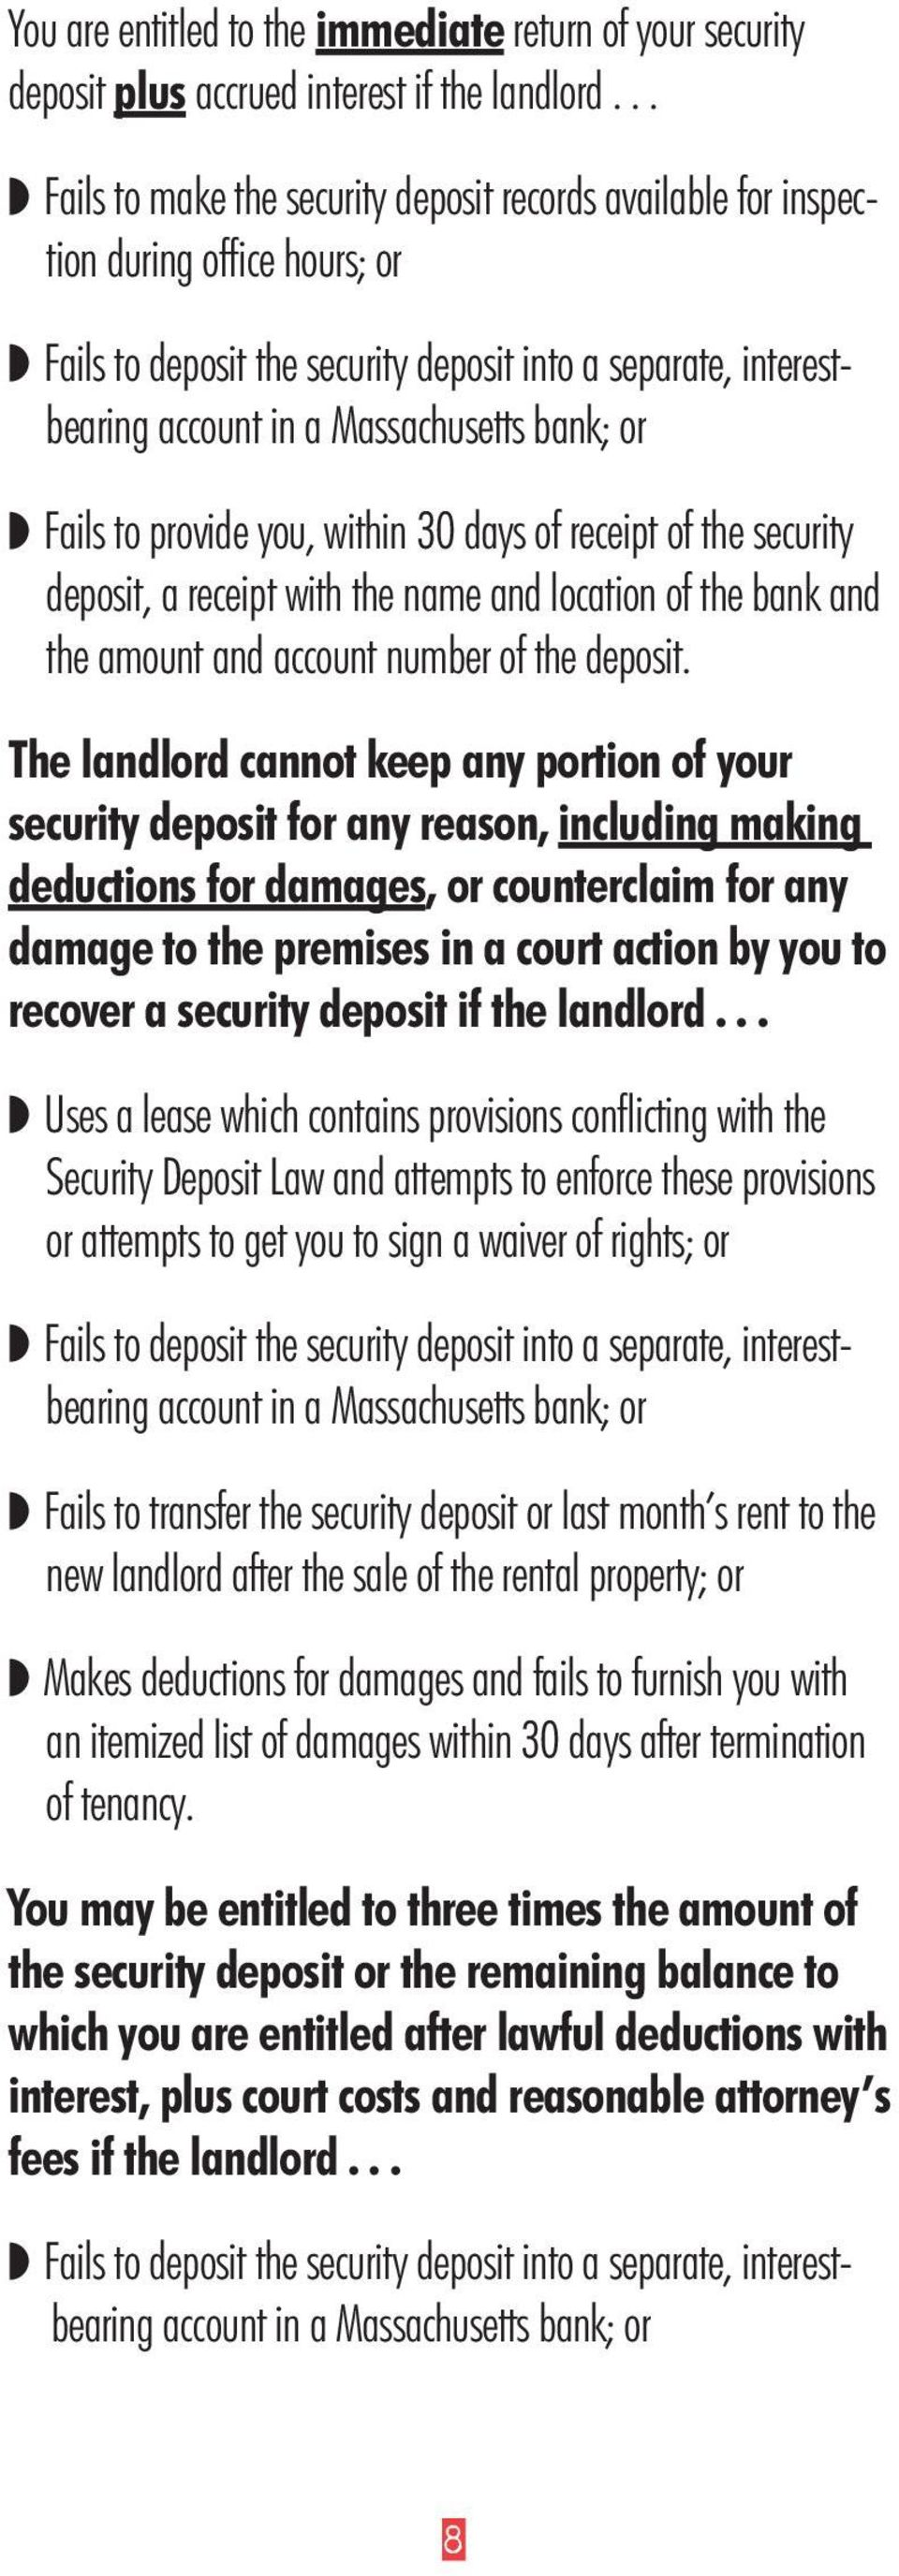 or Fails to provide you, within 30 days of receipt of the security deposit, a receipt with the name and location of the bank and the amount and account number of the deposit.